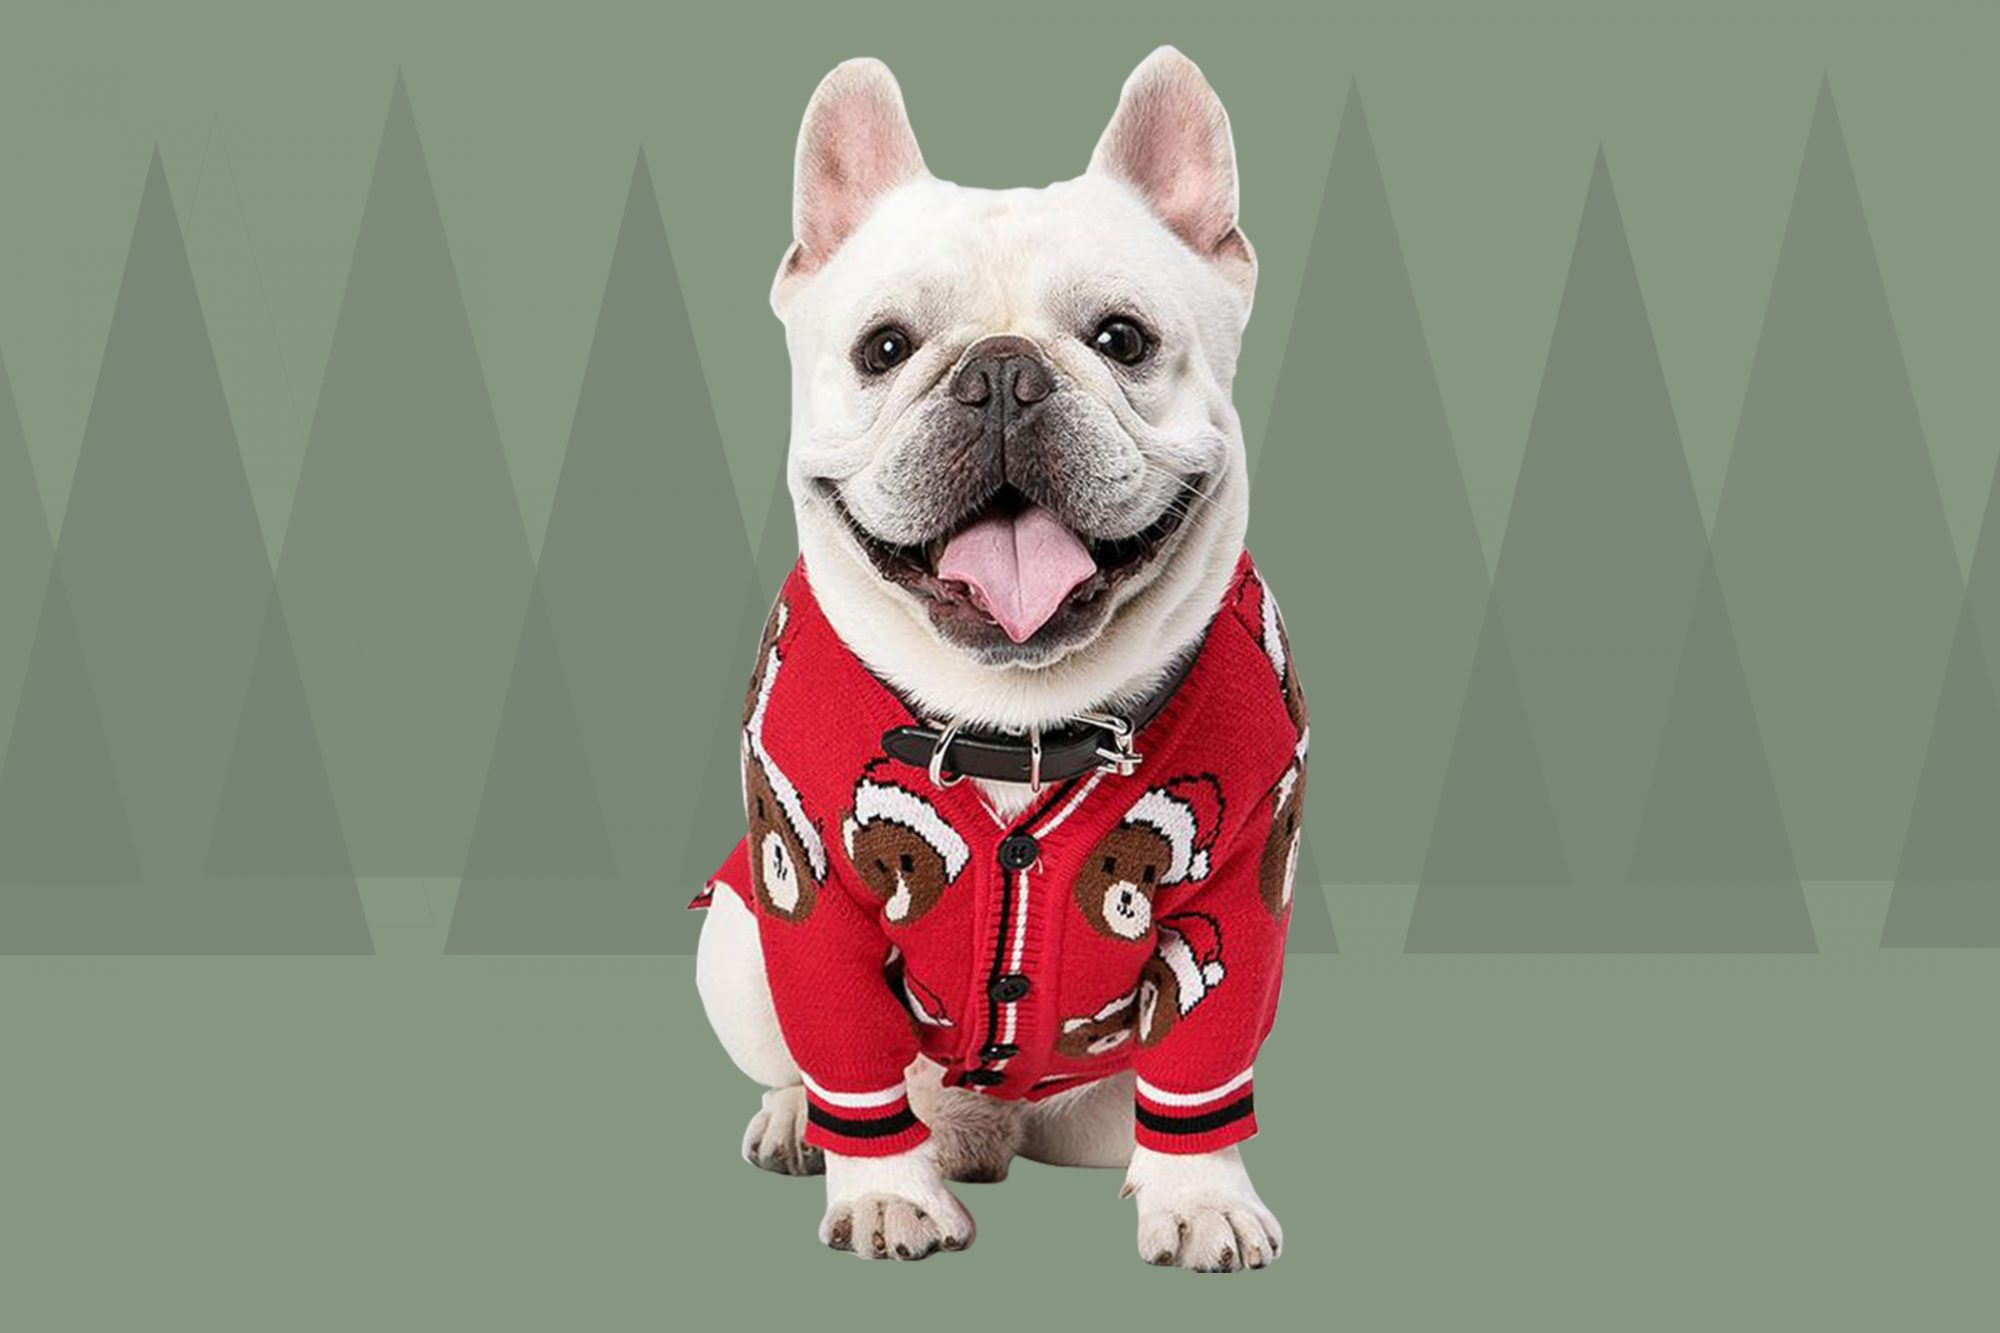 dog in christmas sweater with graphic fir tree background